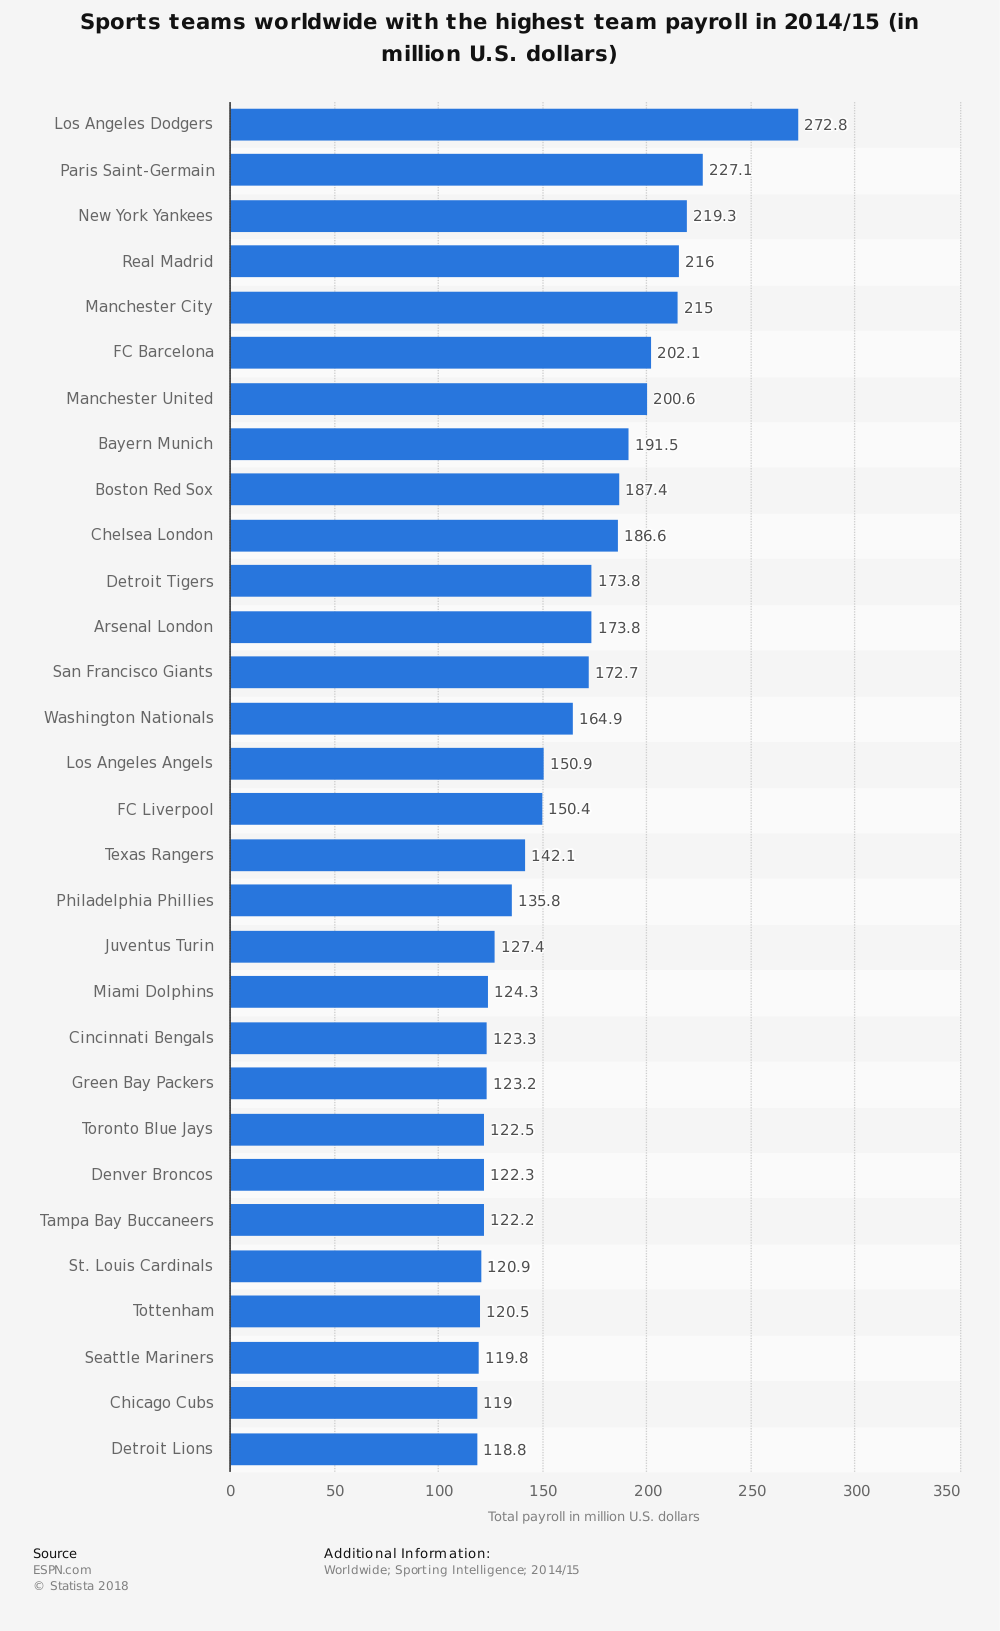 Statistic: Sports teams worldwide with the highest team payroll in 2014/15 (in million U.S. dollars) | Statista